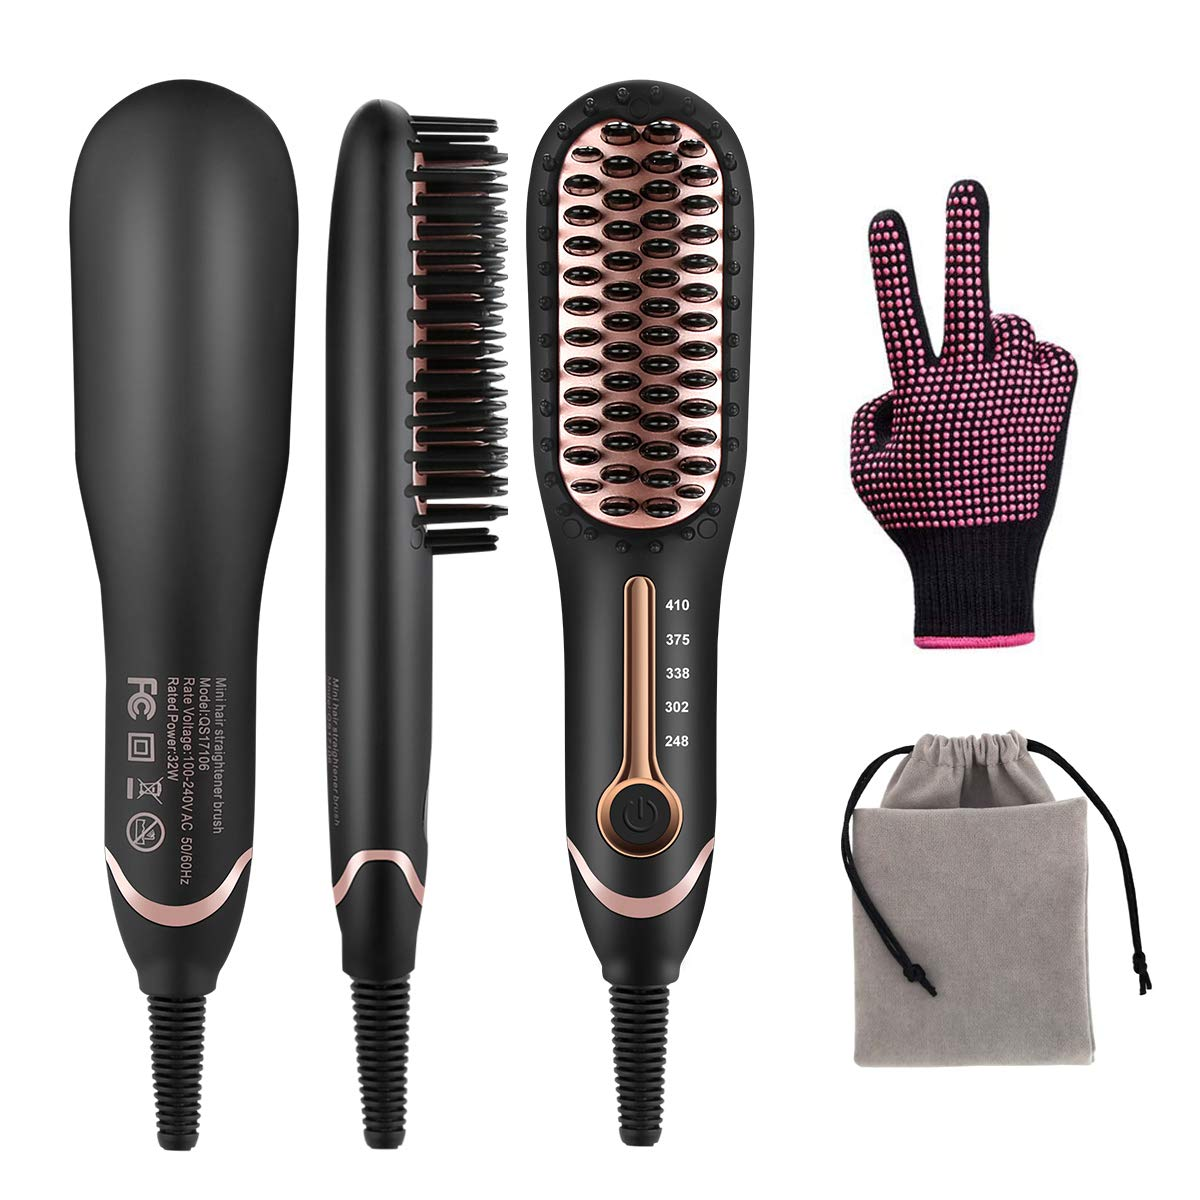 Hair Straightener Brush, Ionic Hair Straightening Brush with Fast MCH Ceramic Heating, Anti-Scald, Auto Temperature Lock and Auto-Off Function, Portable Straightening Comb 110-240V for Home and Travel